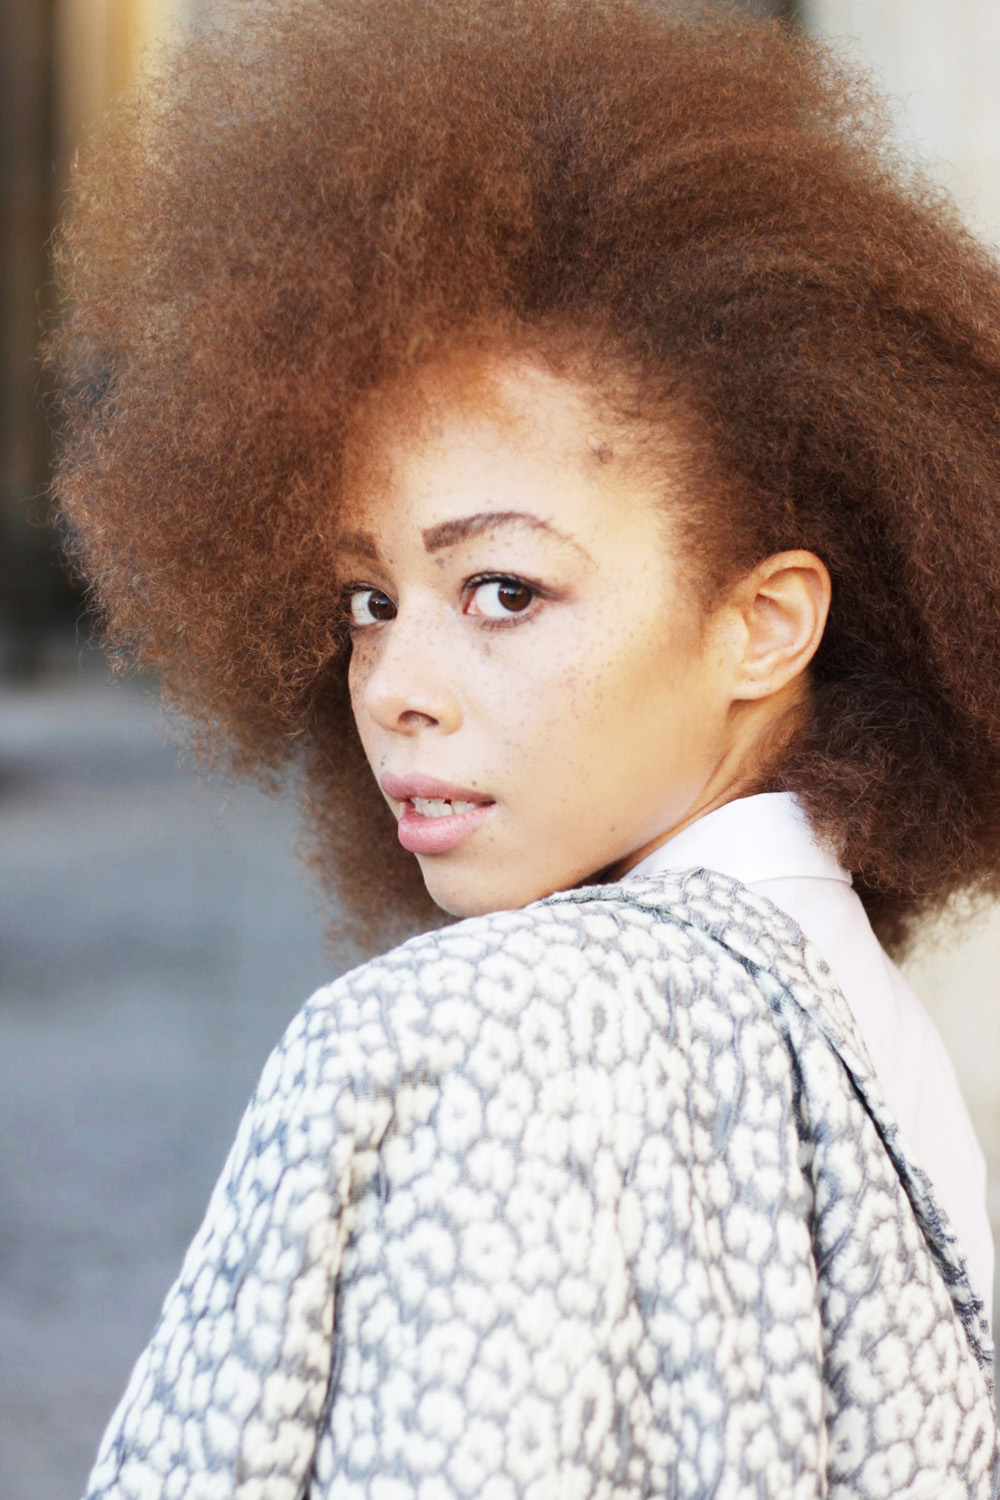 fatimayarie-afro-freckles-redcurls-naturalhair-patterned-blazer-berlinfashionweek-img_1773